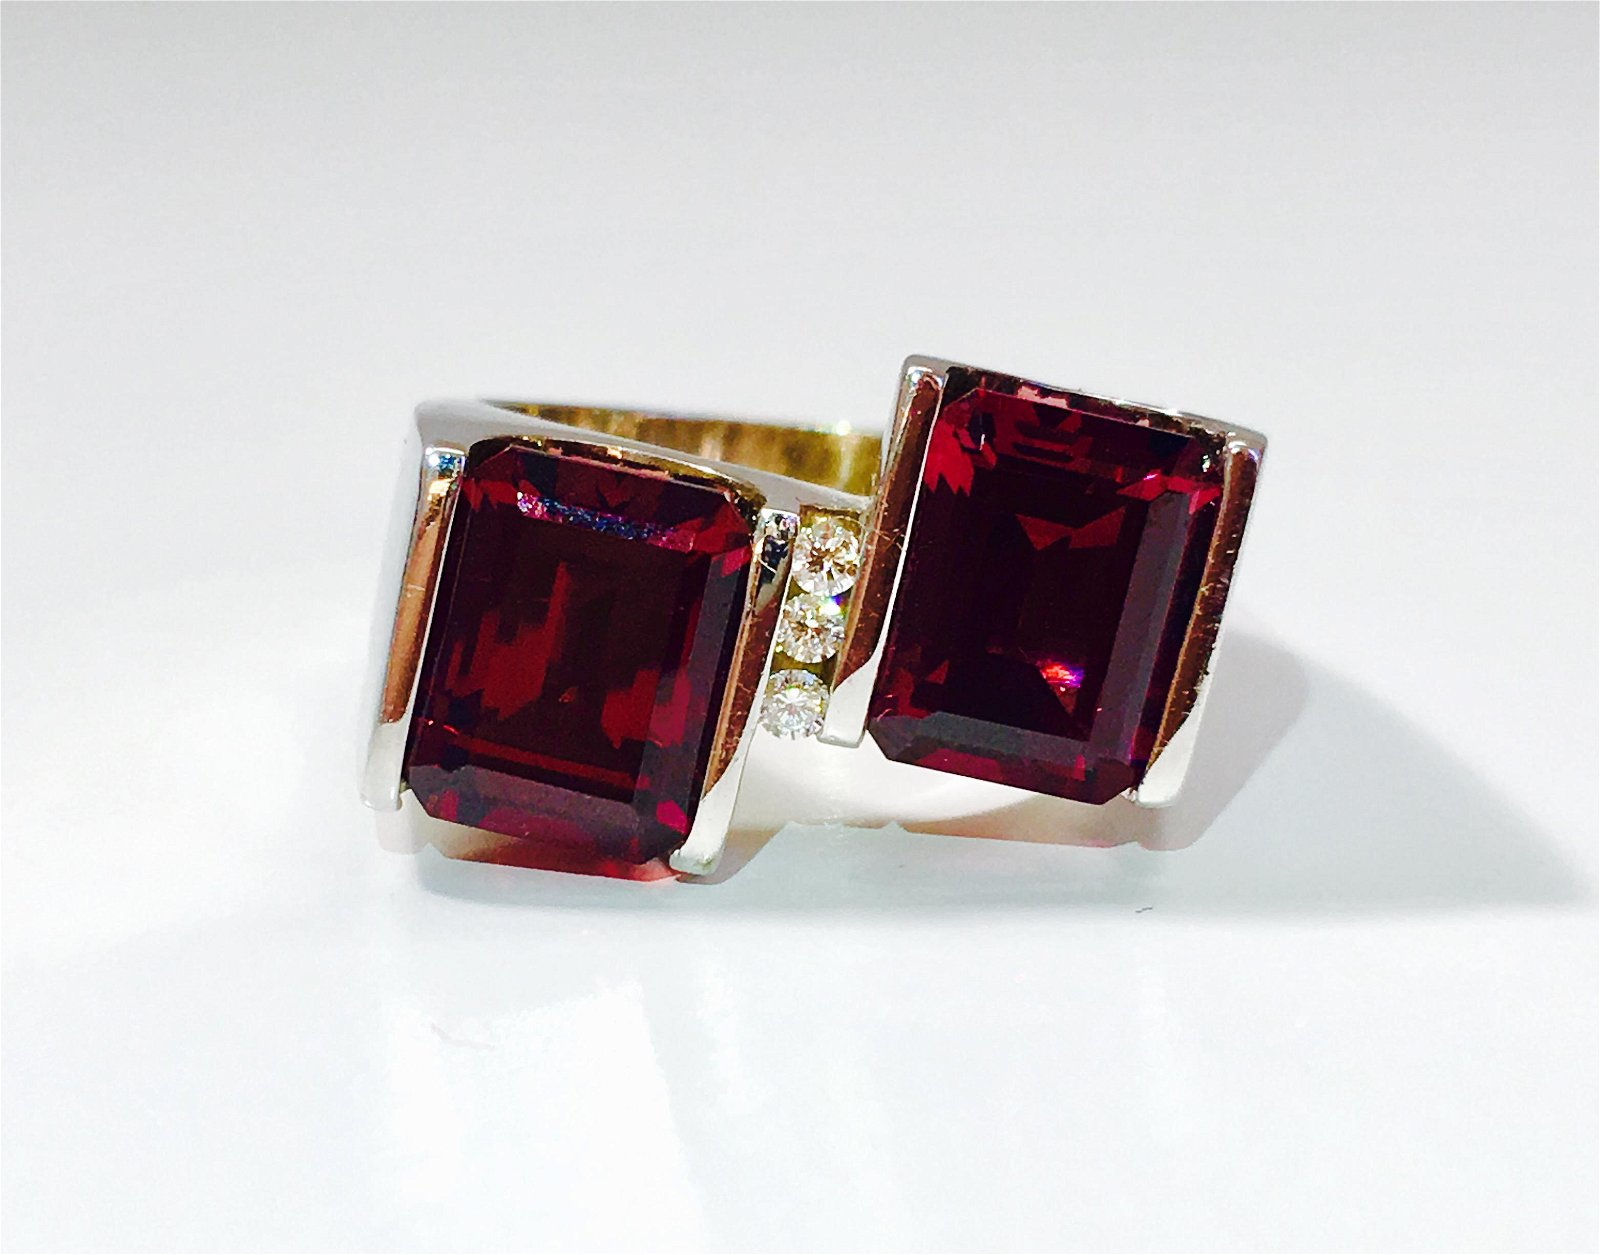 14K Gold, 7 Carat Natural Garnet and Diamond Ring.